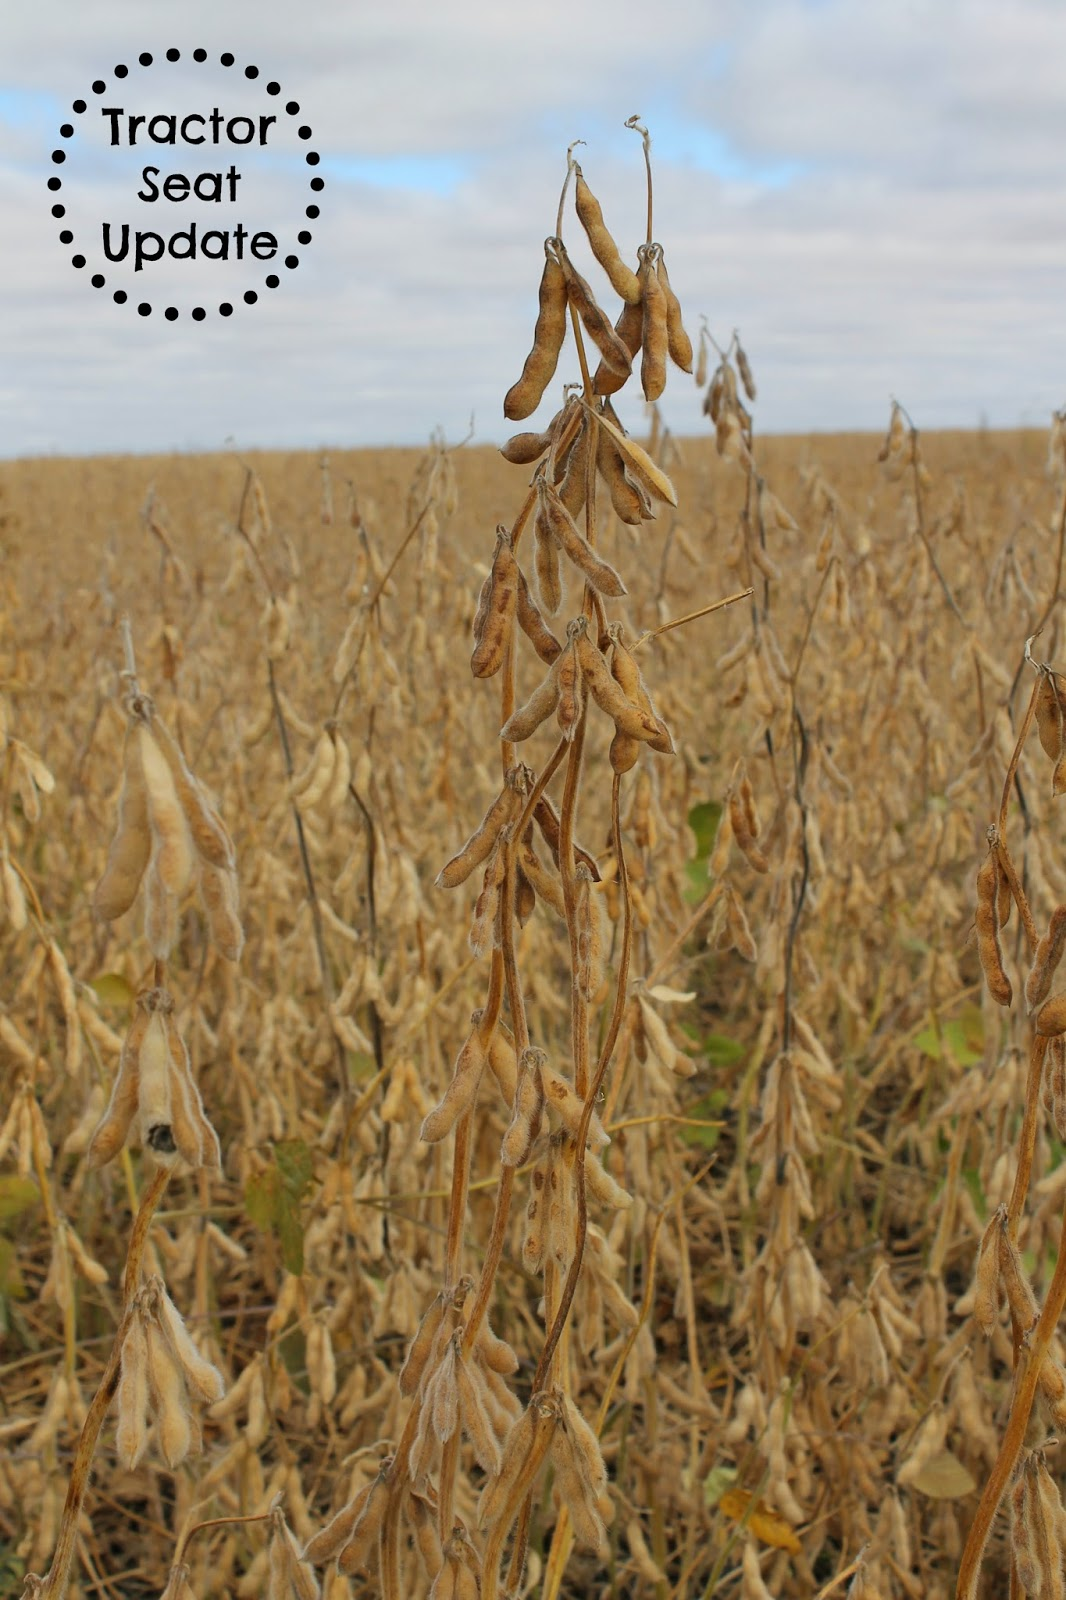 Tractor Seat Update - Soybean Harvest